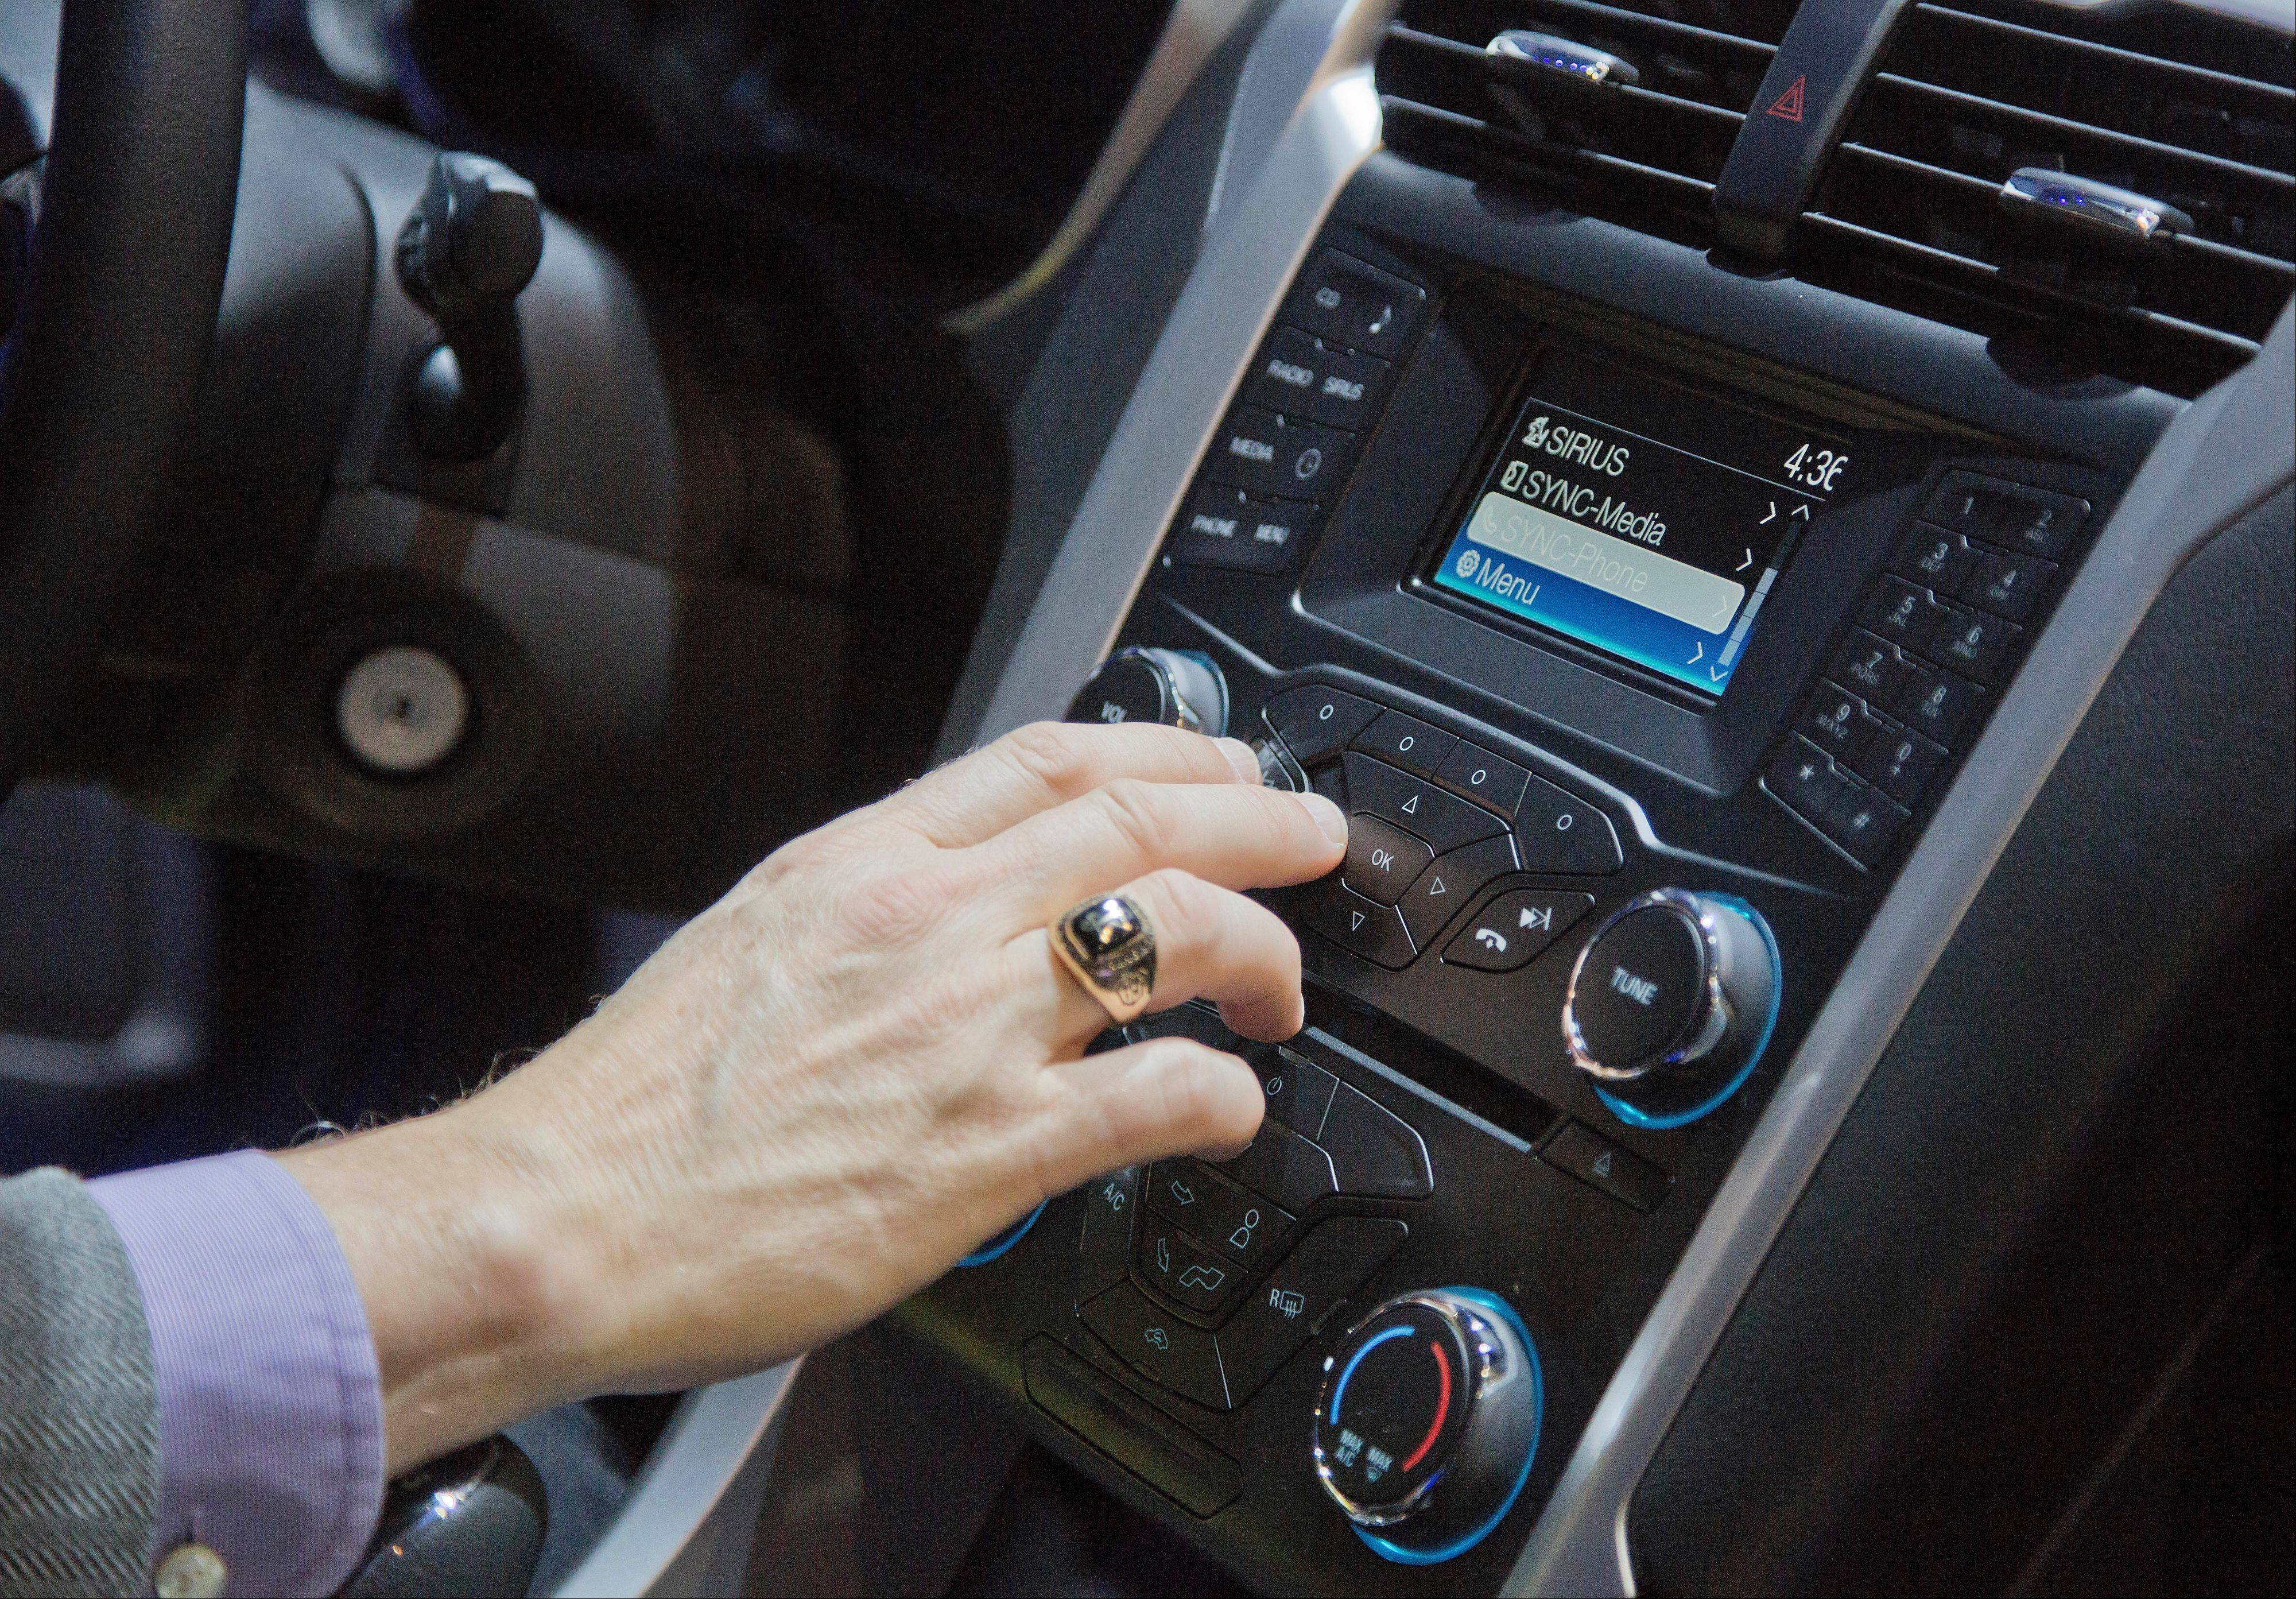 Ford�s SYNC connection and entertainment system is tested inside a Ford Fusion at the Consumer Electronics Show in Las Vegas. Ford�s SYNC connects the car stereo and navigation system to a user�s mobile device.